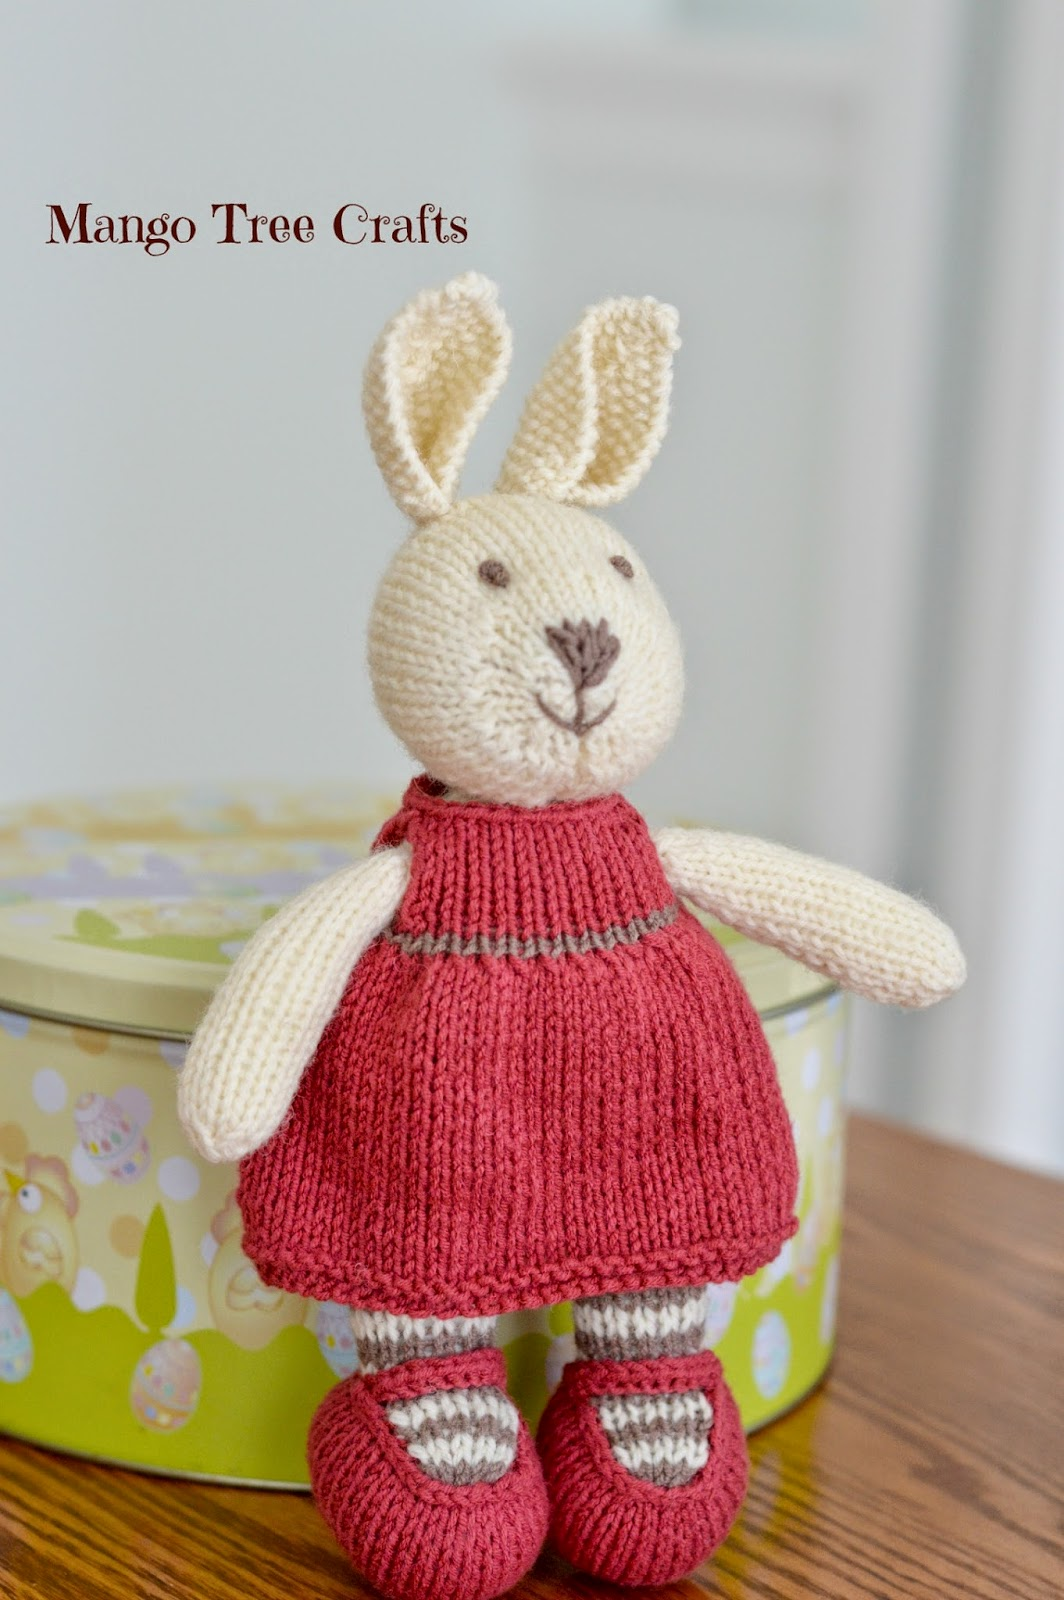 Mango tree crafts knitted bunny girl knitted bunny girl knitted bunny pattern bankloansurffo Choice Image